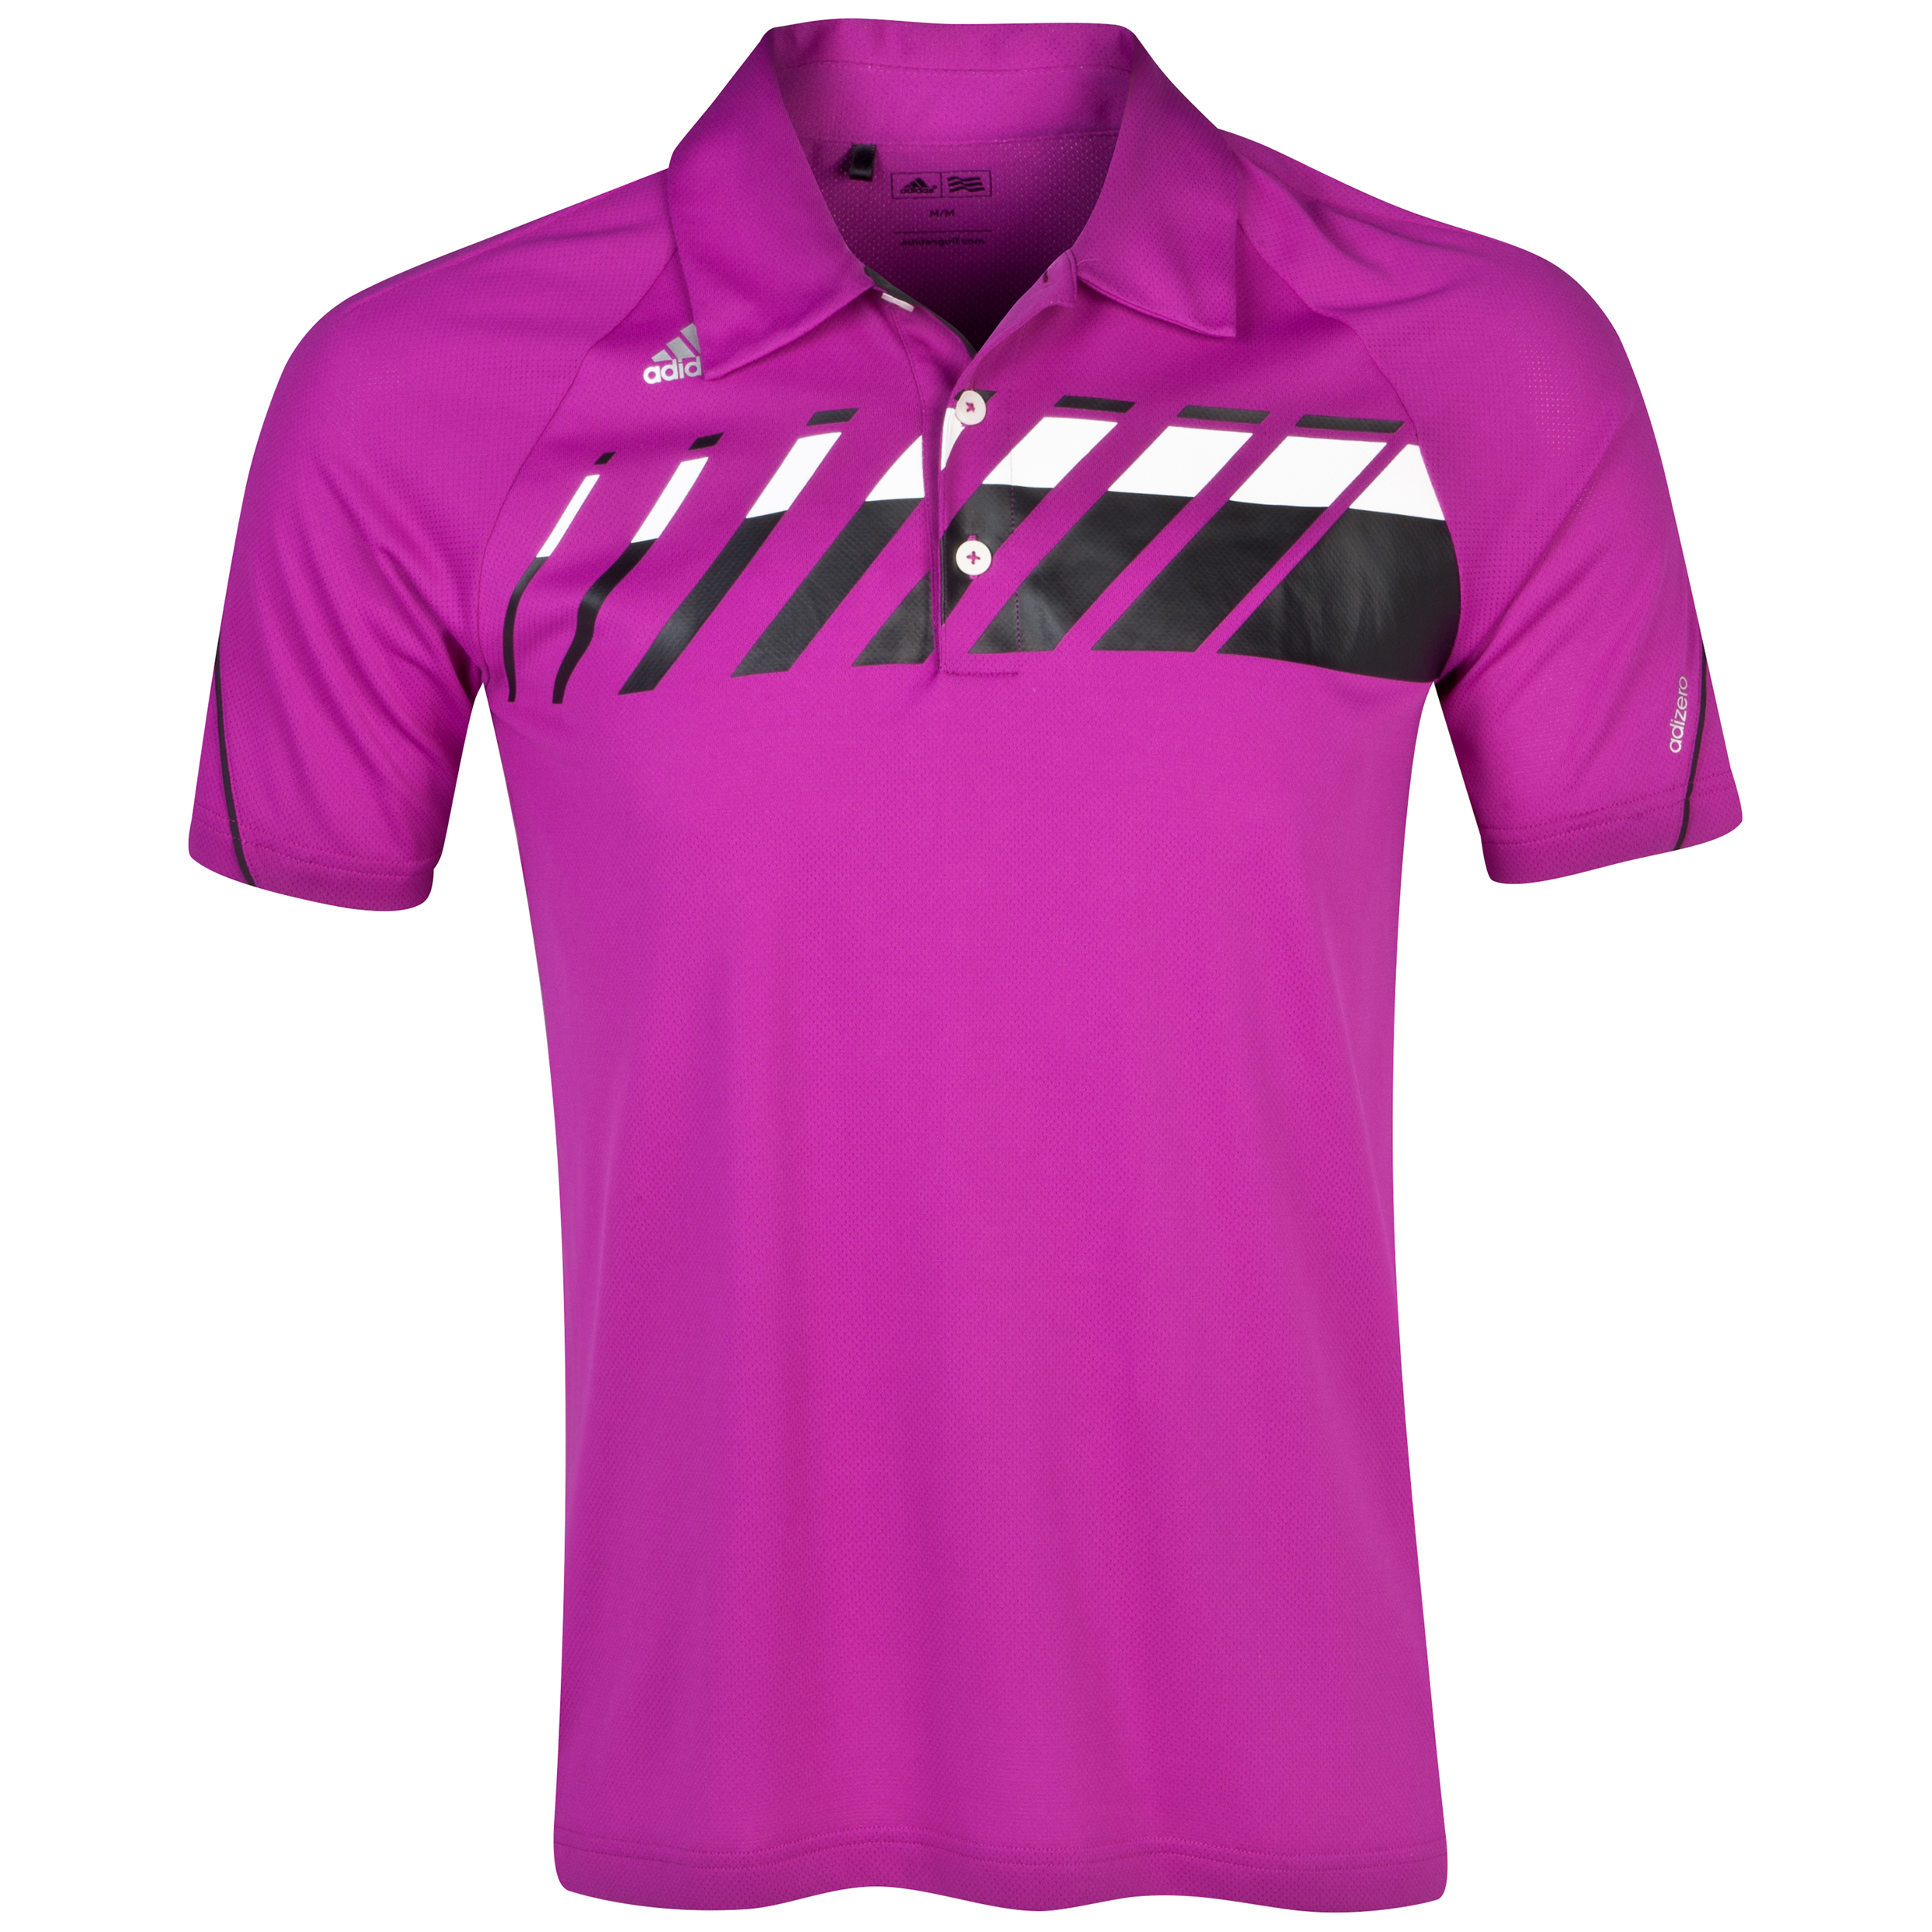 The 2014 Ryder Cup adidas adizero Graphic Print Mesh Polo